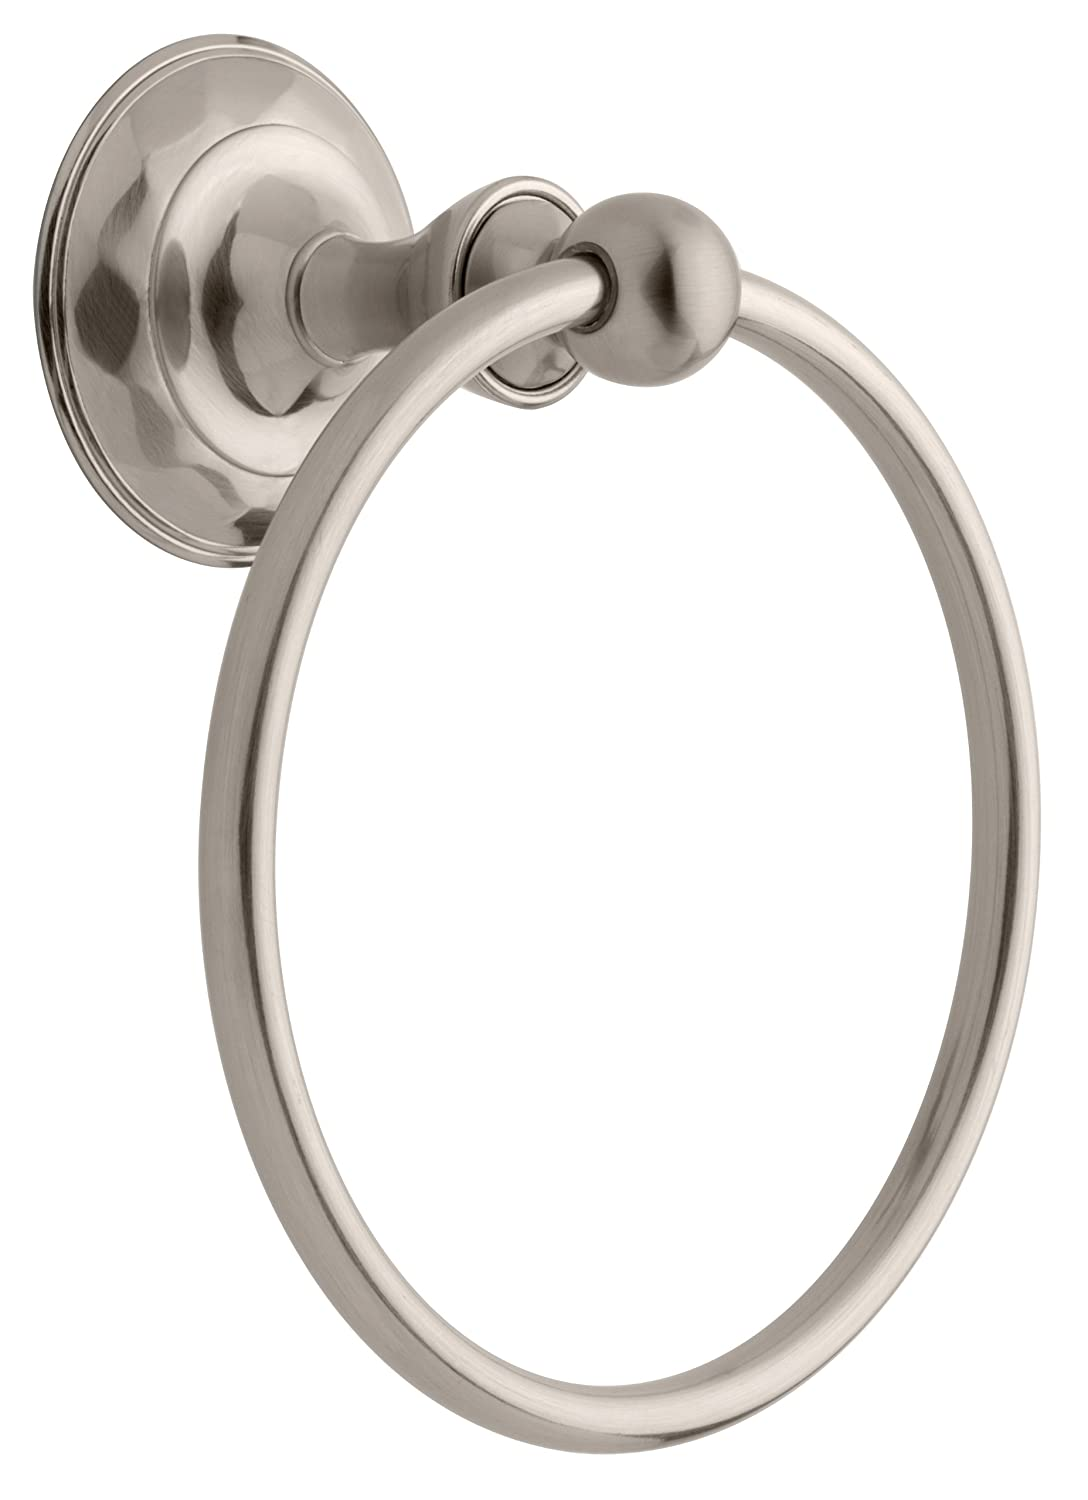 Delta Faucet 133057 Pirouette Towel Ring, SpotShield Brushed Nickel